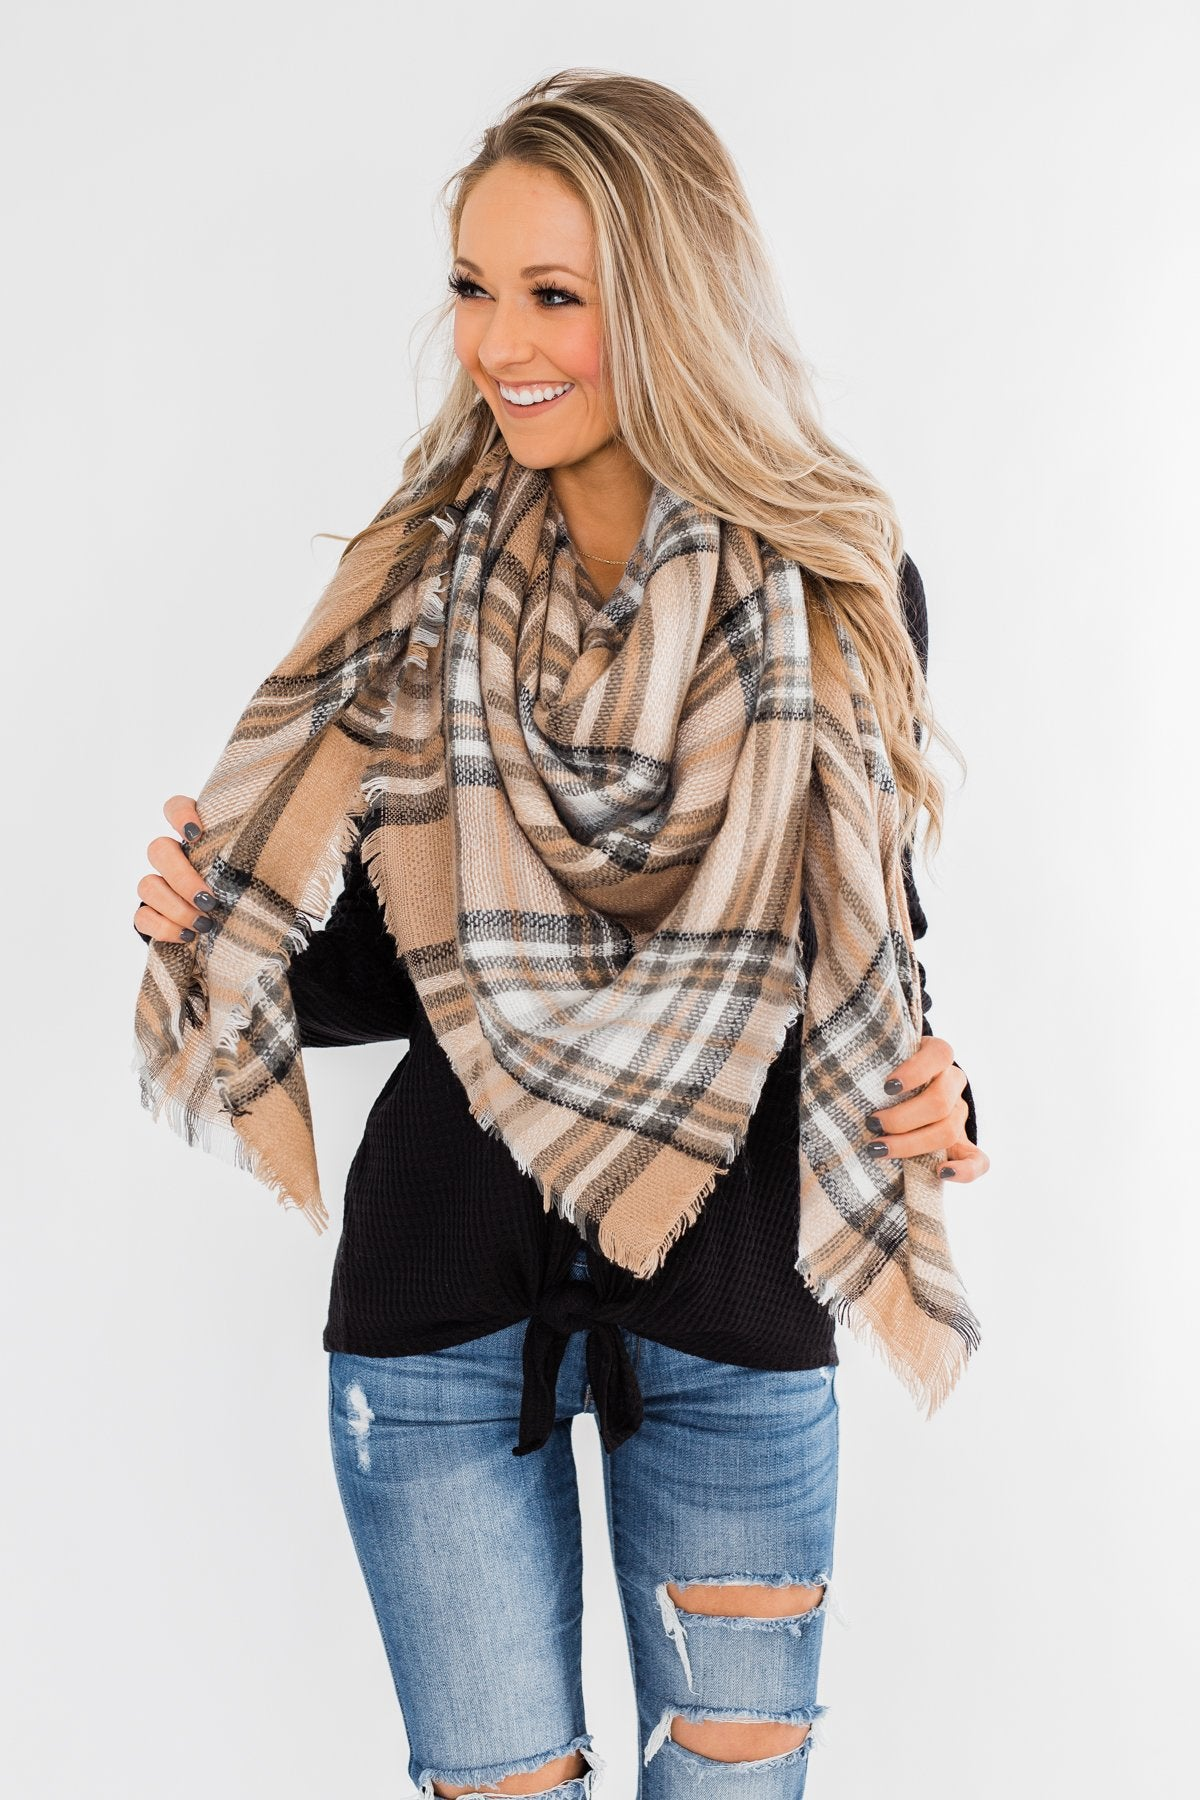 Soft & Cozy Blanket Scarf- Beige, Olive, & Ivory